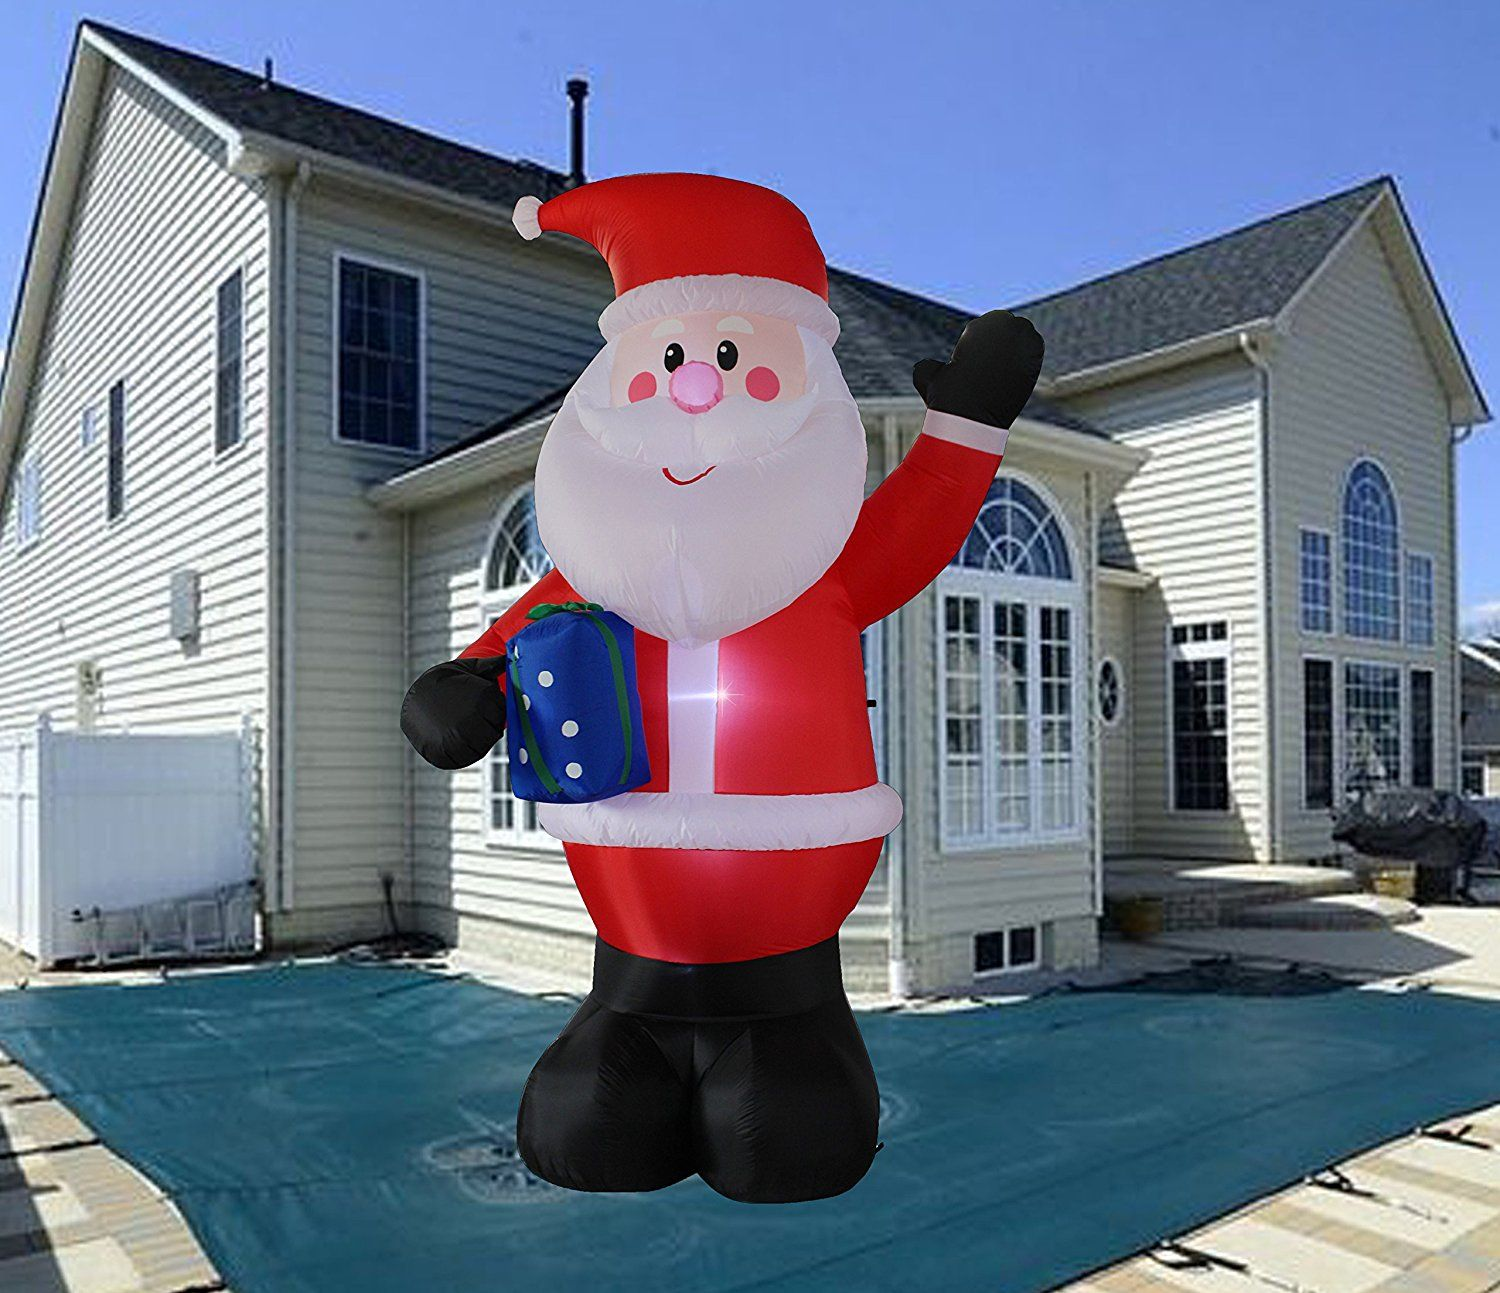 10 Foot Inflatable Portable Santa Claus Blow Up Indoor and Outdoor Lawn Yard Home Decoration